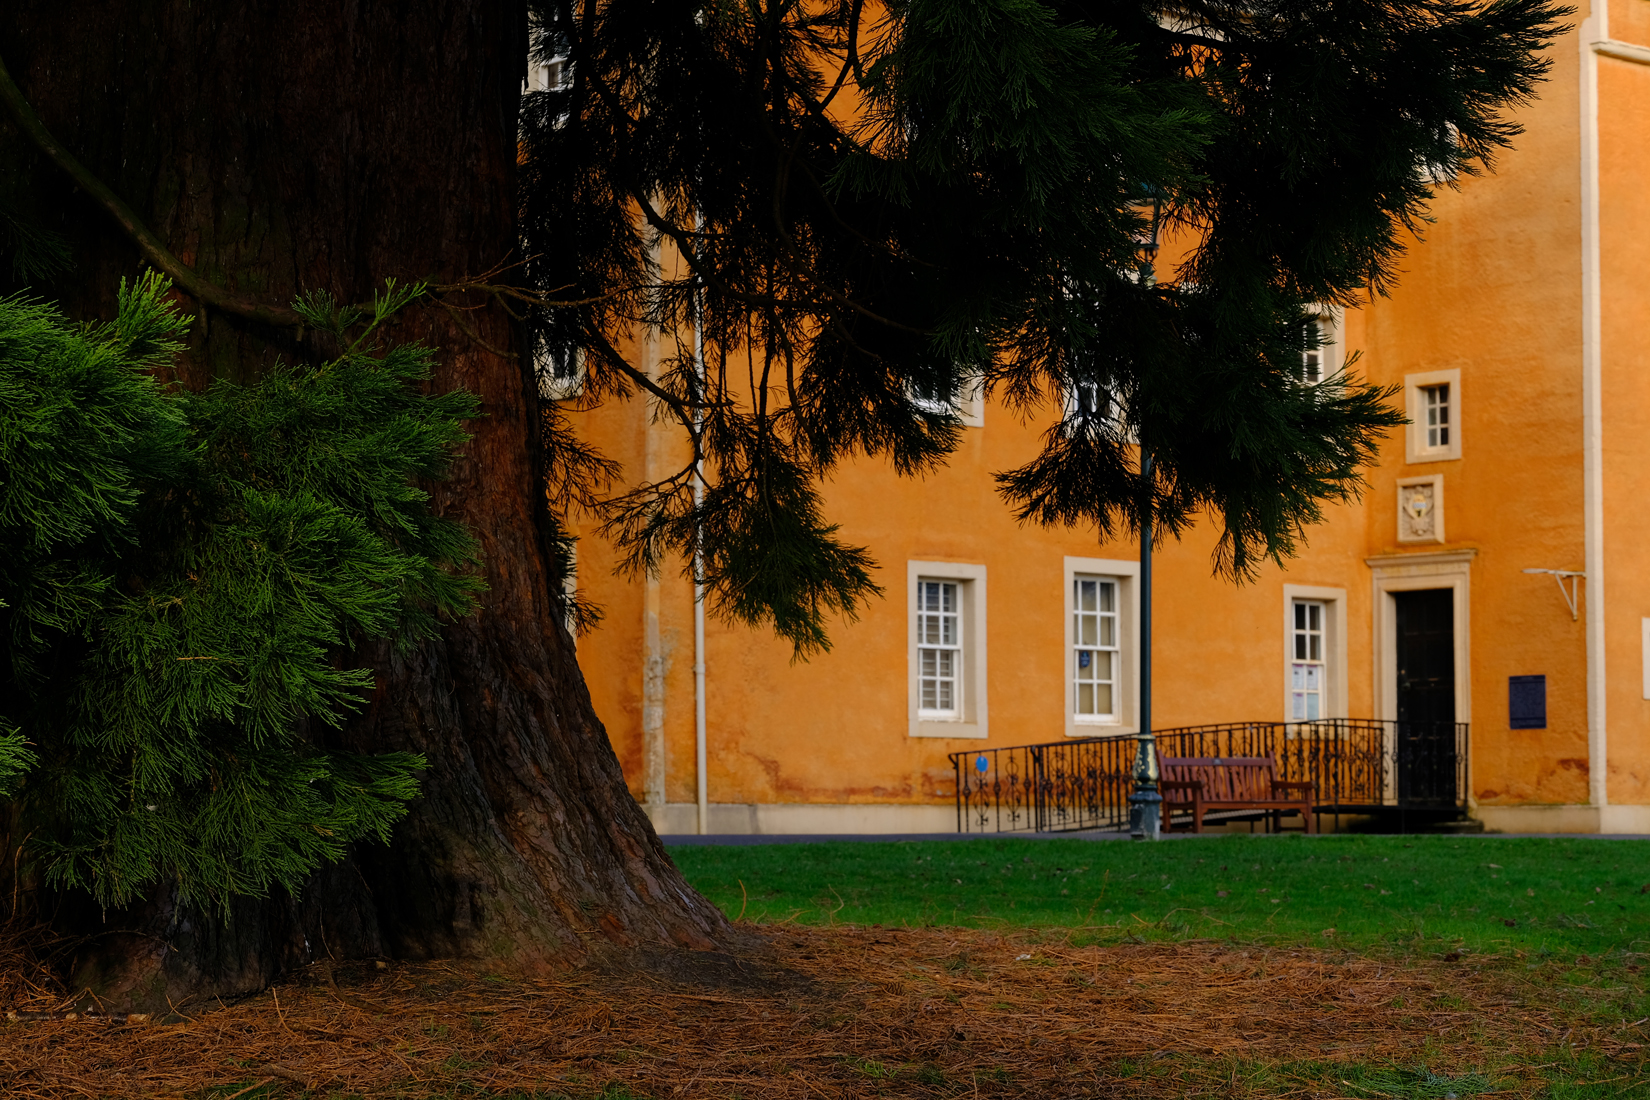 Large tree trunk in foreground and pine looking foliage. In background is orange building with small sash windows and the entrance door with ramp towards it.